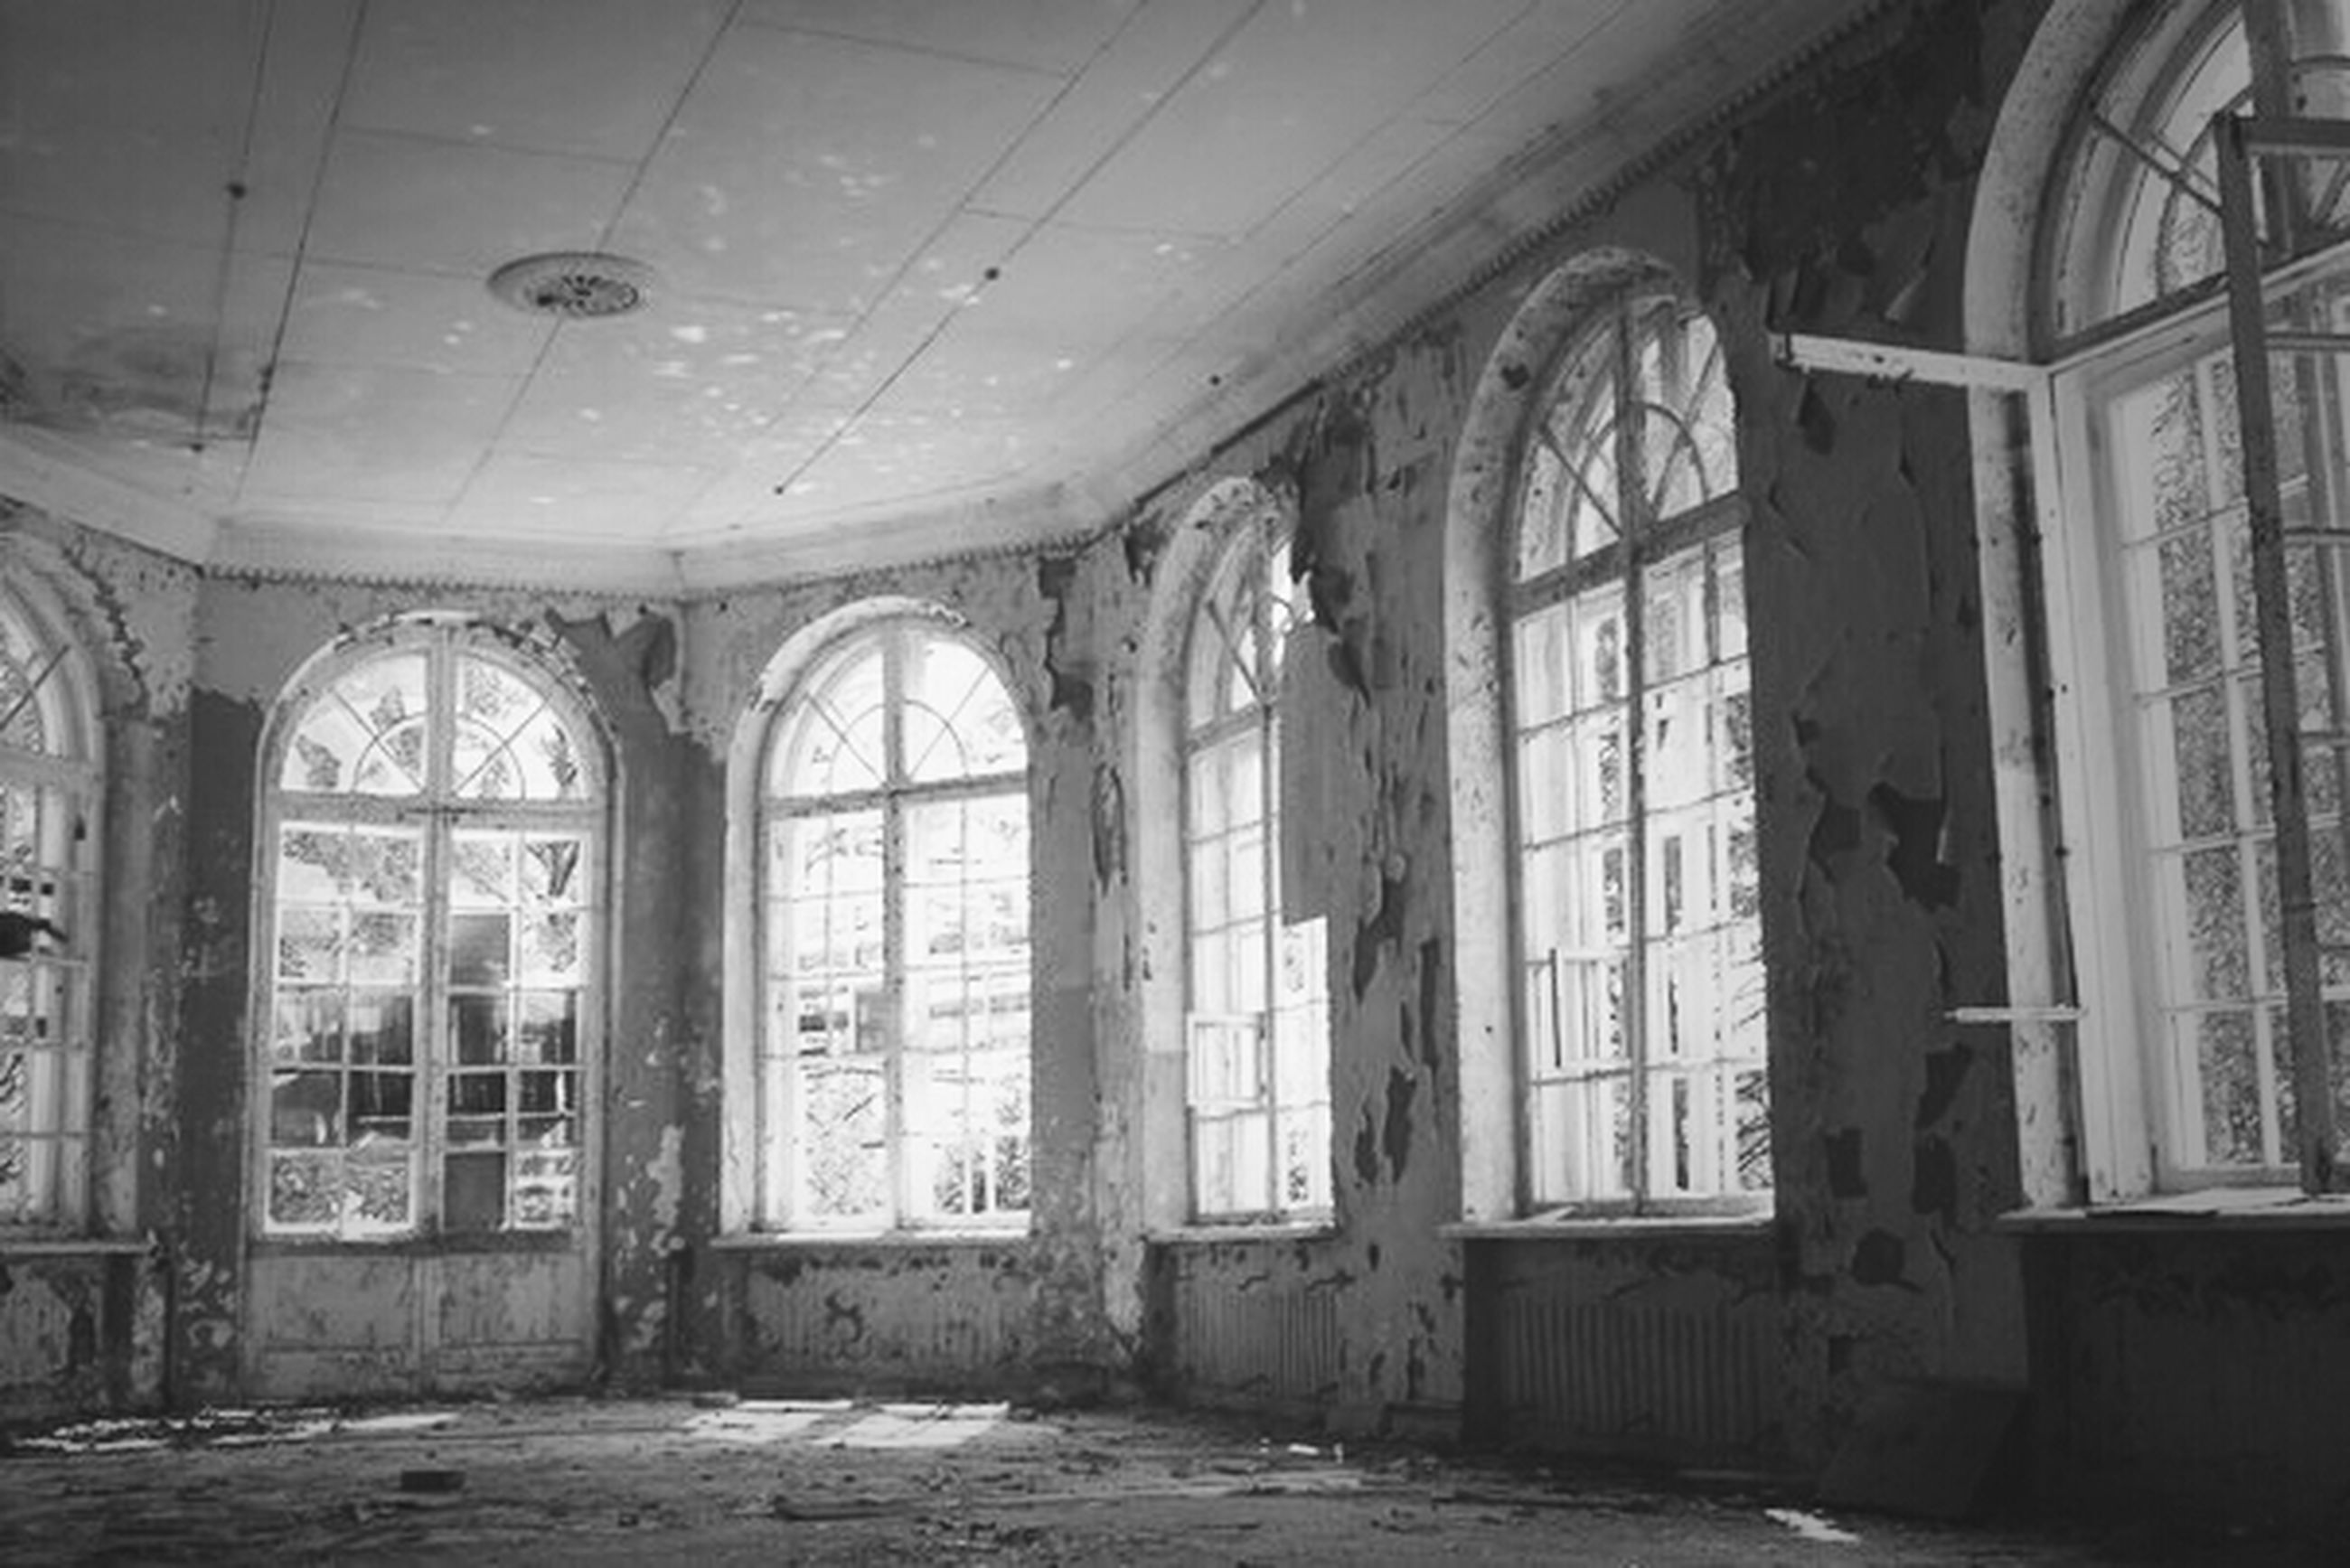 indoors, abandoned, architecture, damaged, obsolete, built structure, window, run-down, deterioration, interior, old, bad condition, house, broken, weathered, ruined, door, ceiling, building, messy